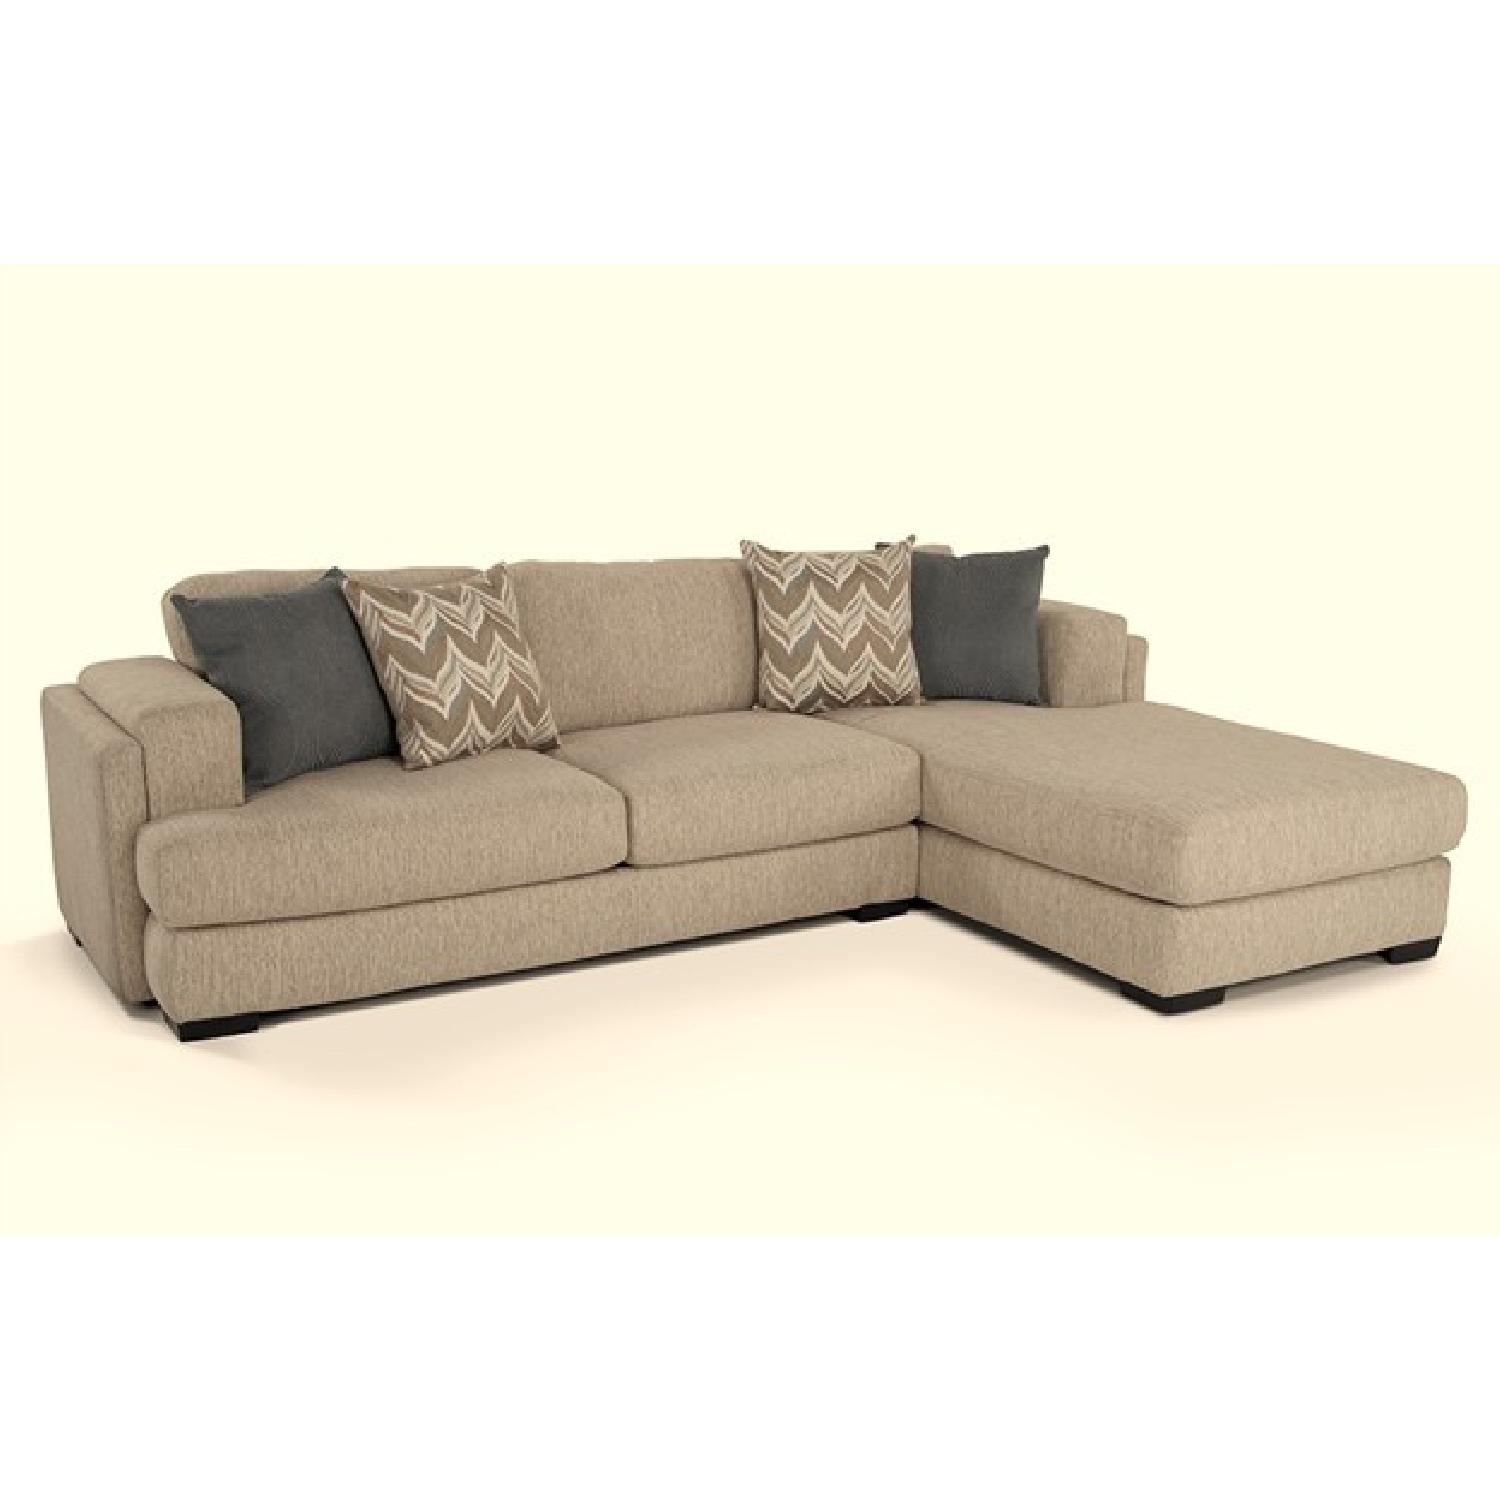 Bob s Discount Furniture for Sale AptDeco